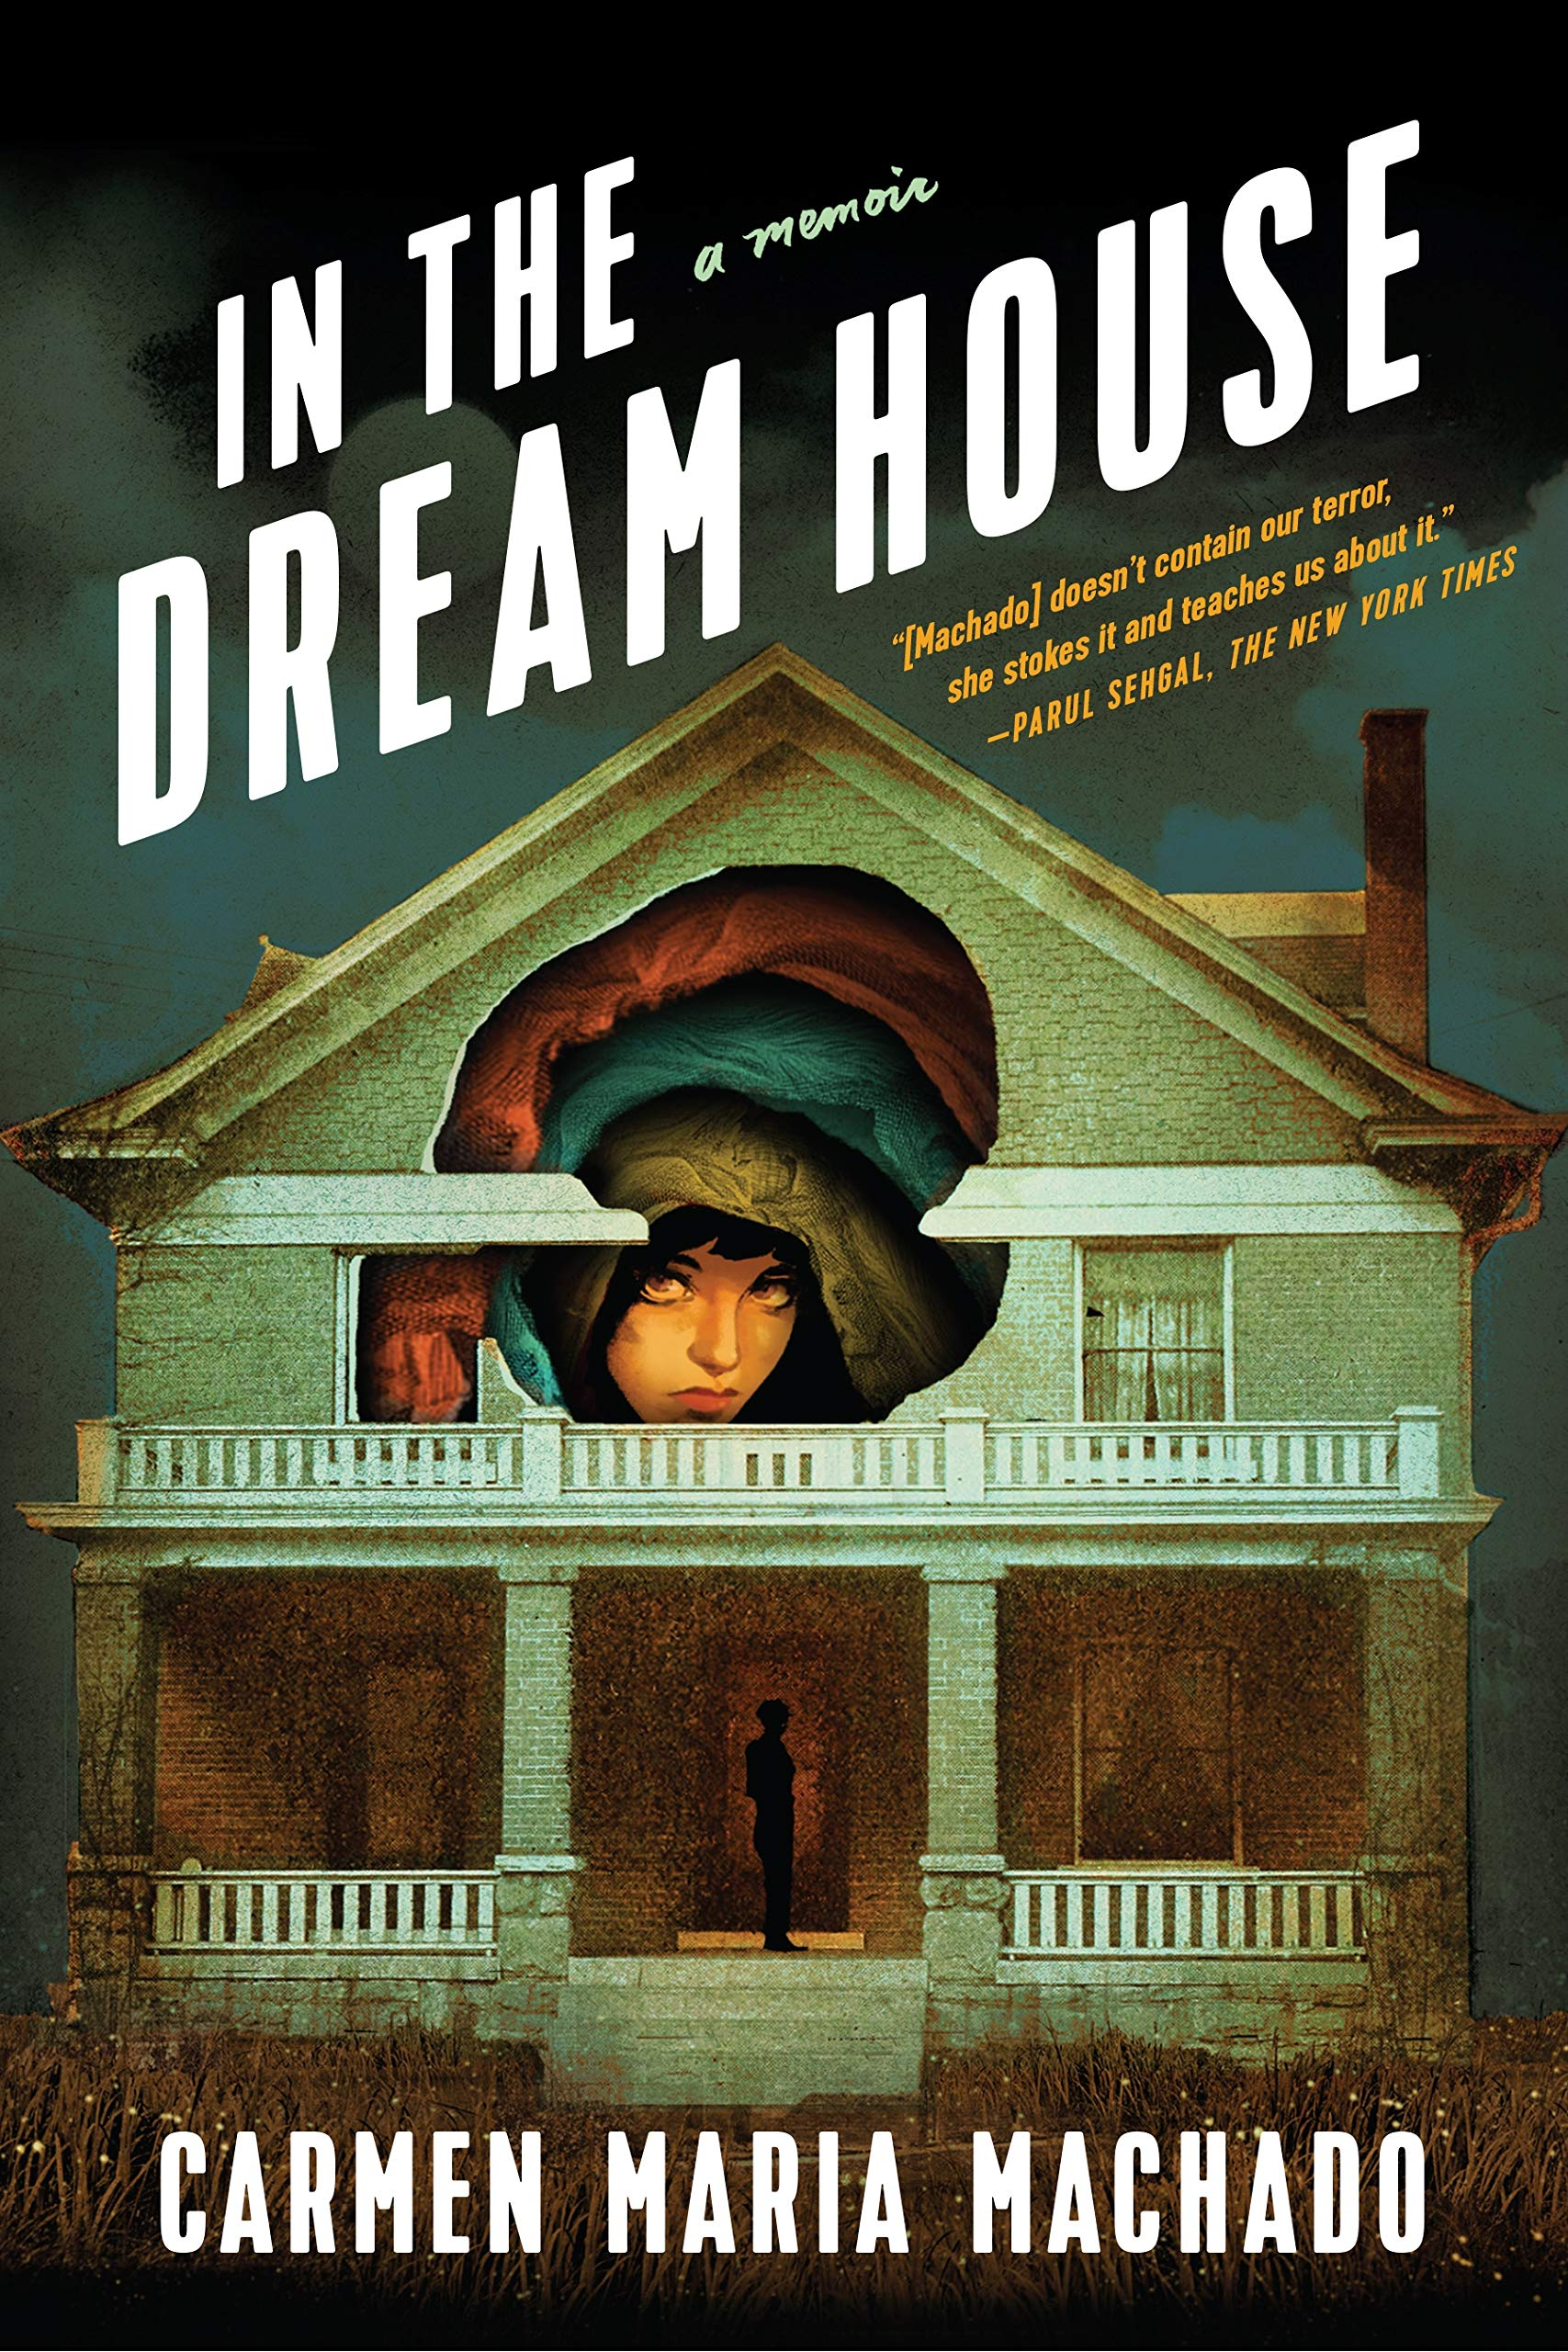 Amazon.com: In the Dream House: A Memoir (9781644450031): Machado, Carmen  Maria: Books